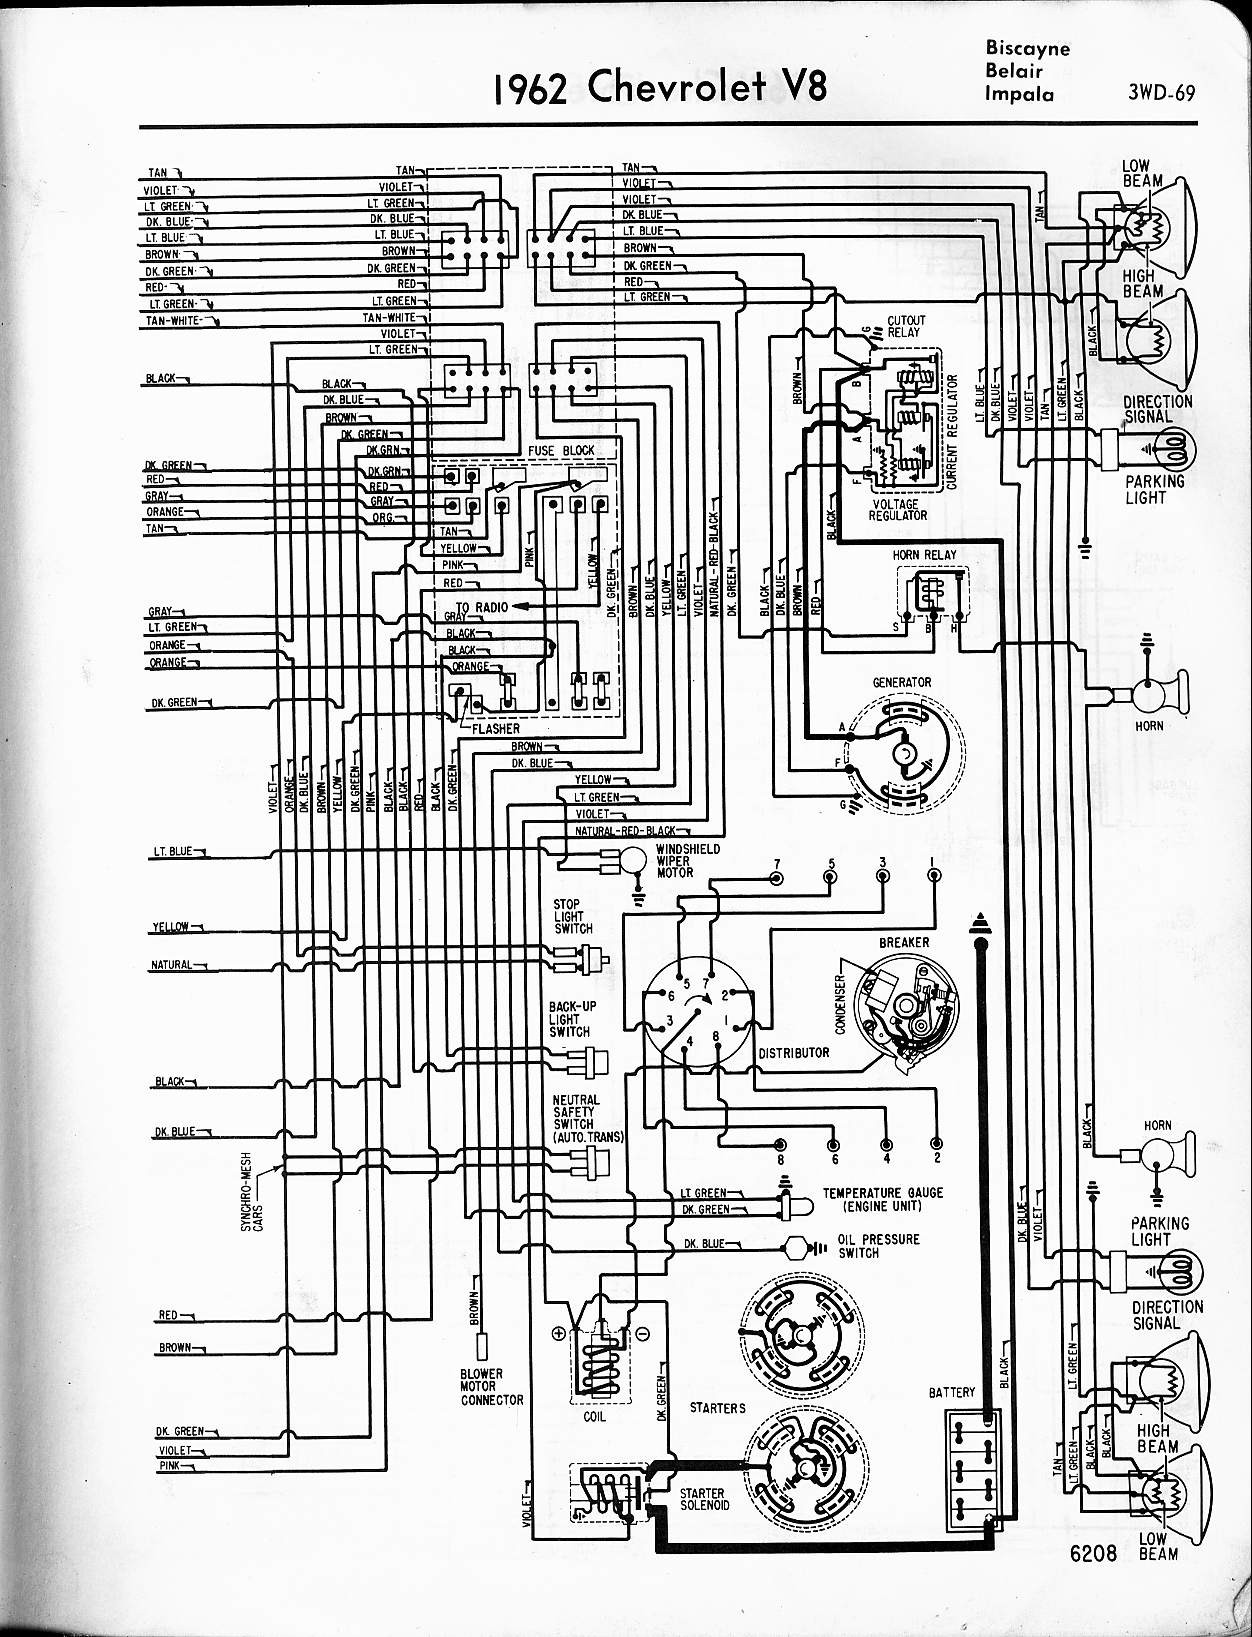 2006 chevy impala engine diagram 57 65 chevy wiring diagrams of 2006 chevy impala engine diagram 1 wiring diagram for 06 impala wiring library